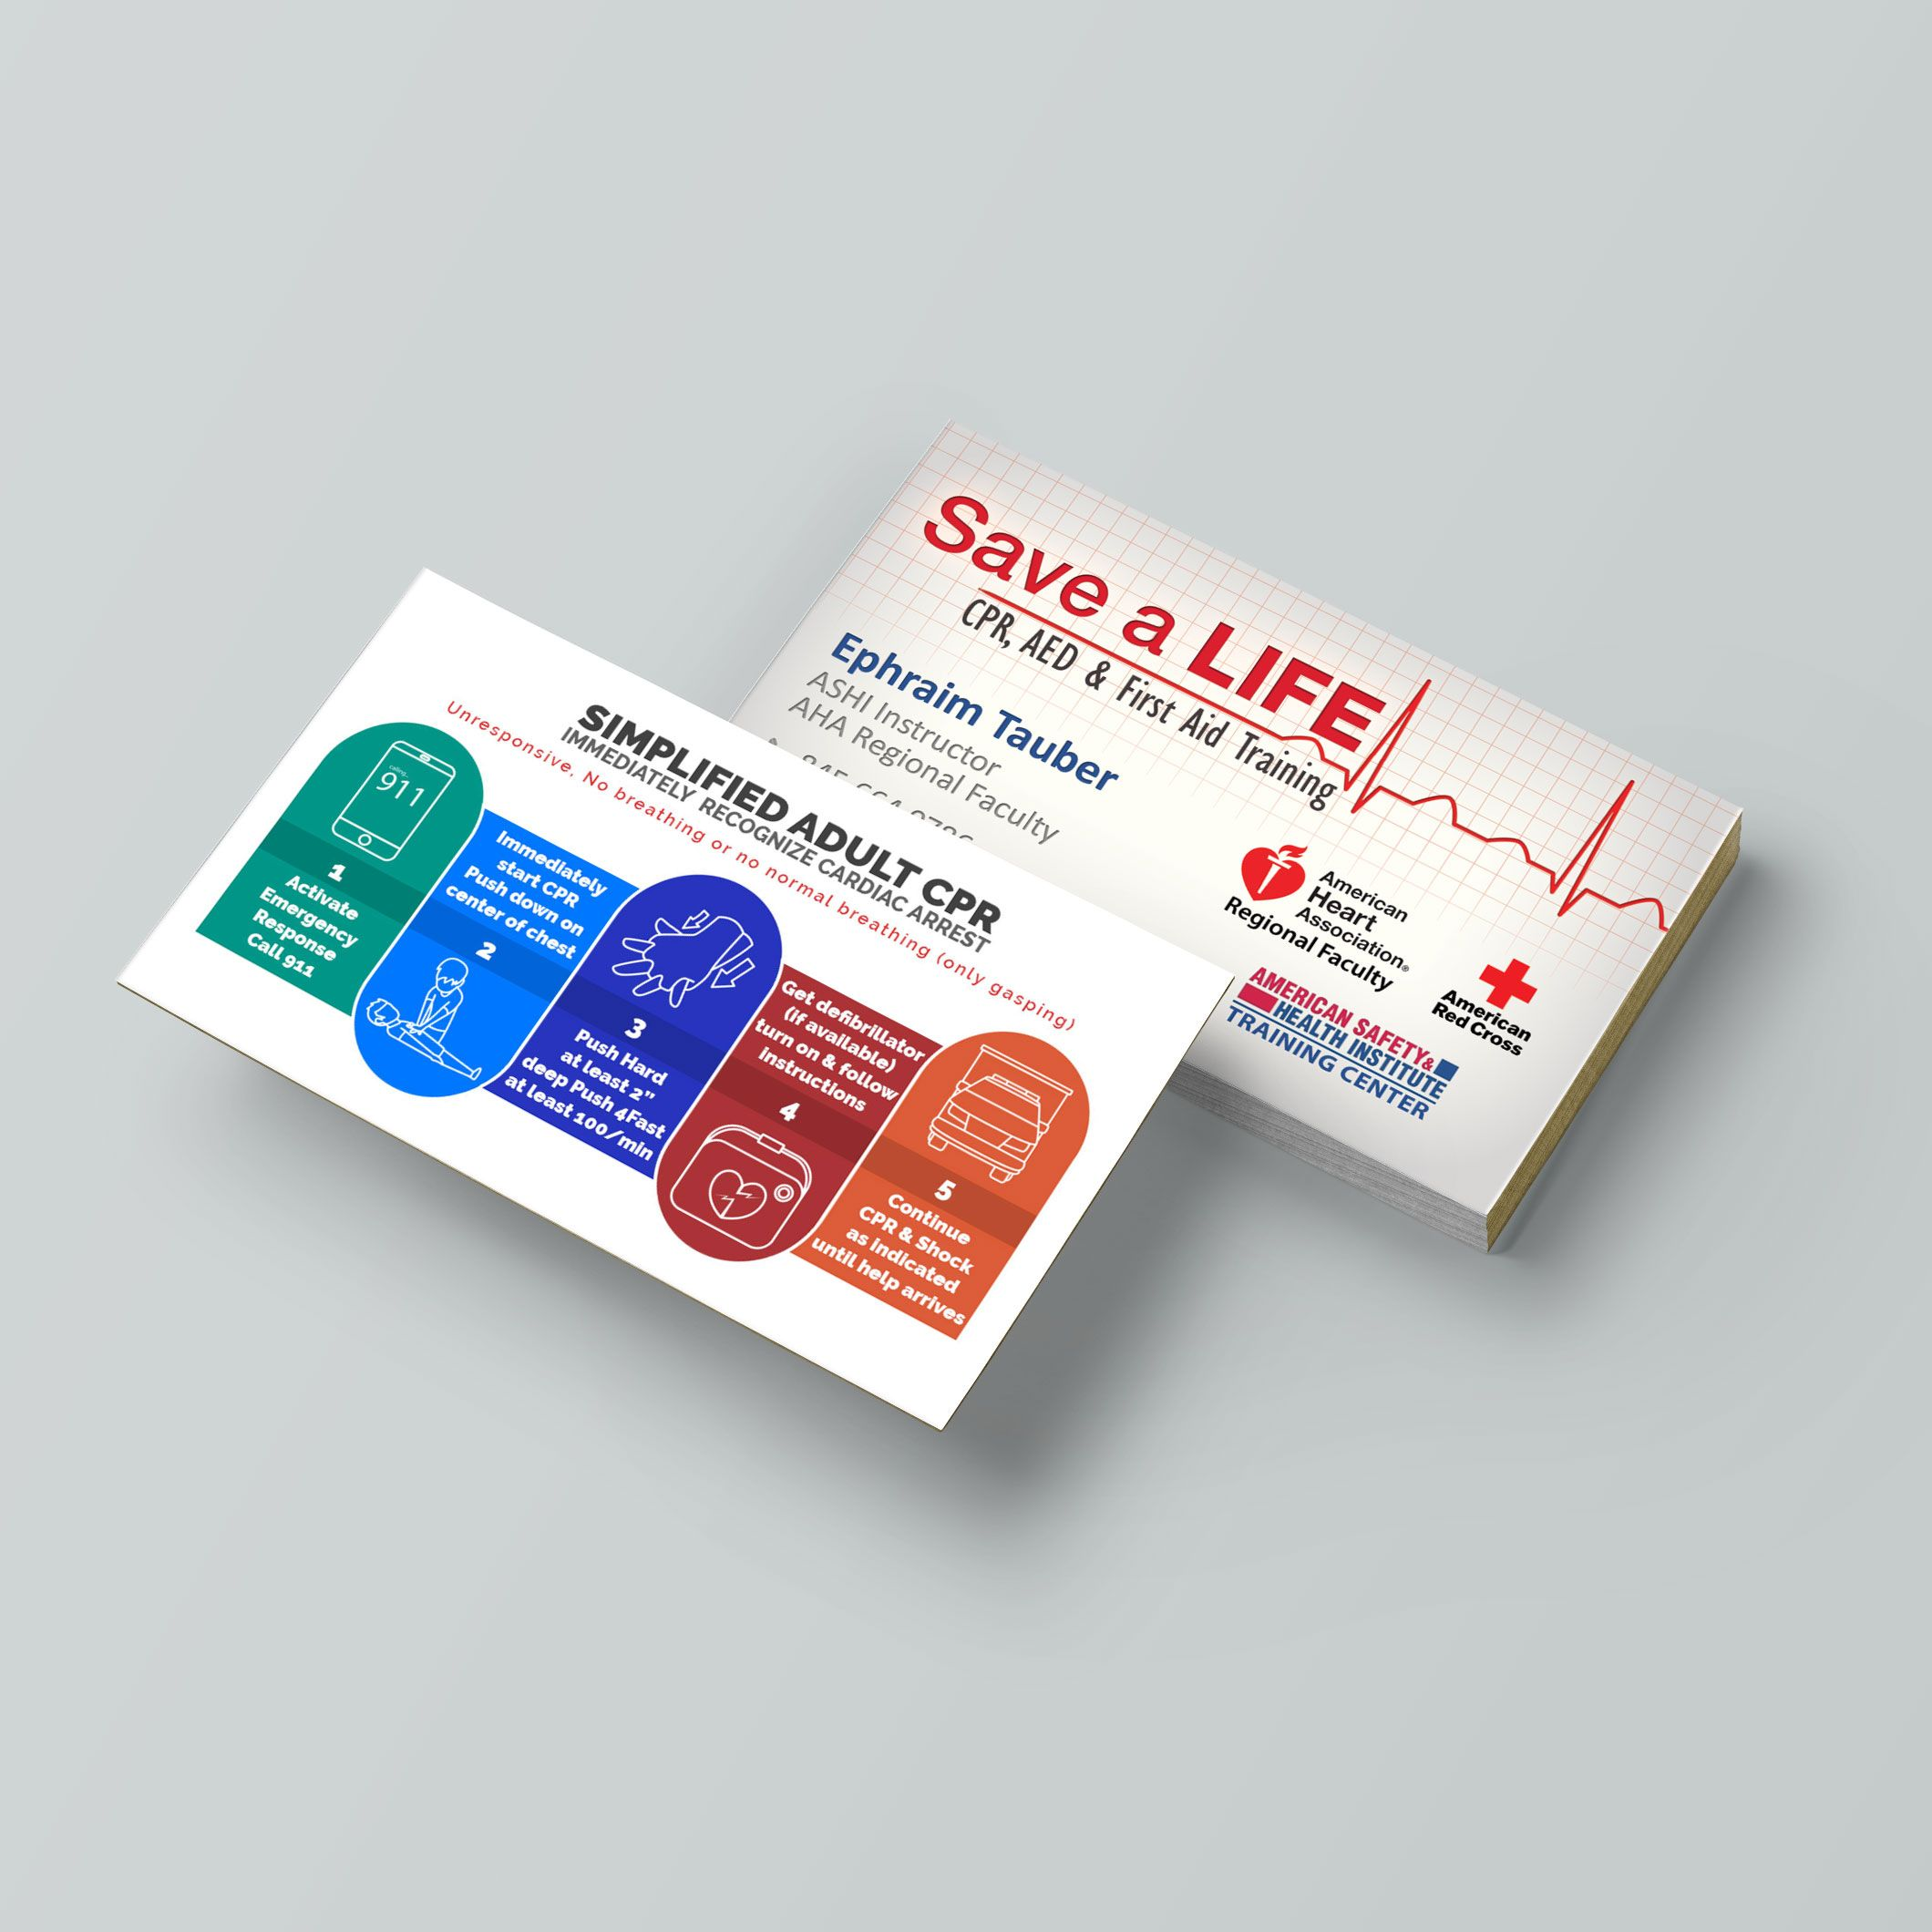 Cpr Instructor Business Cards Small Business Start Up Cpr Business Cards Creative